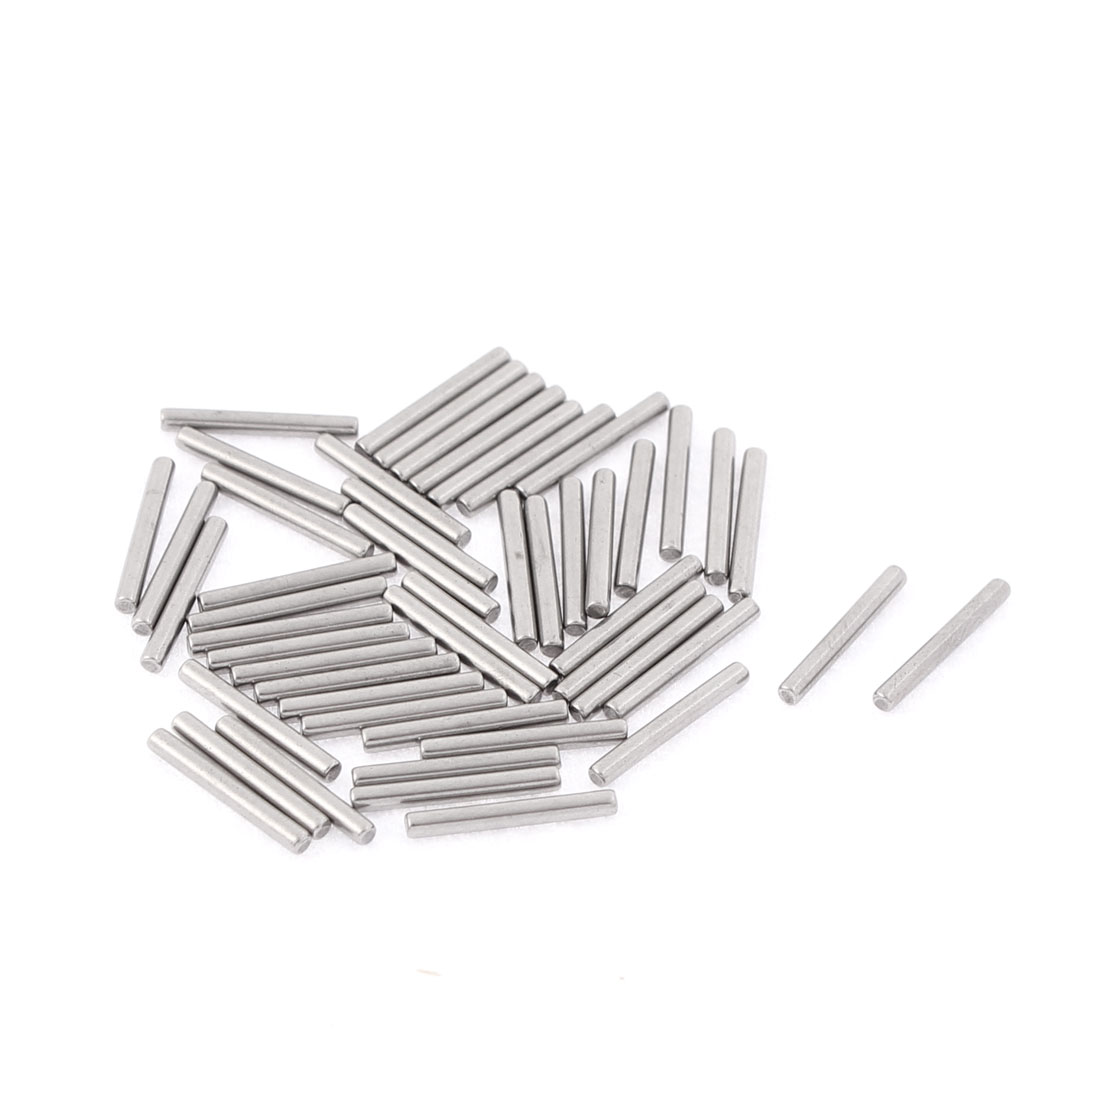 M1.5x12mm Stainless Steel Straight Retaining Dowel Pins Rod Fasten Elements 50pcs